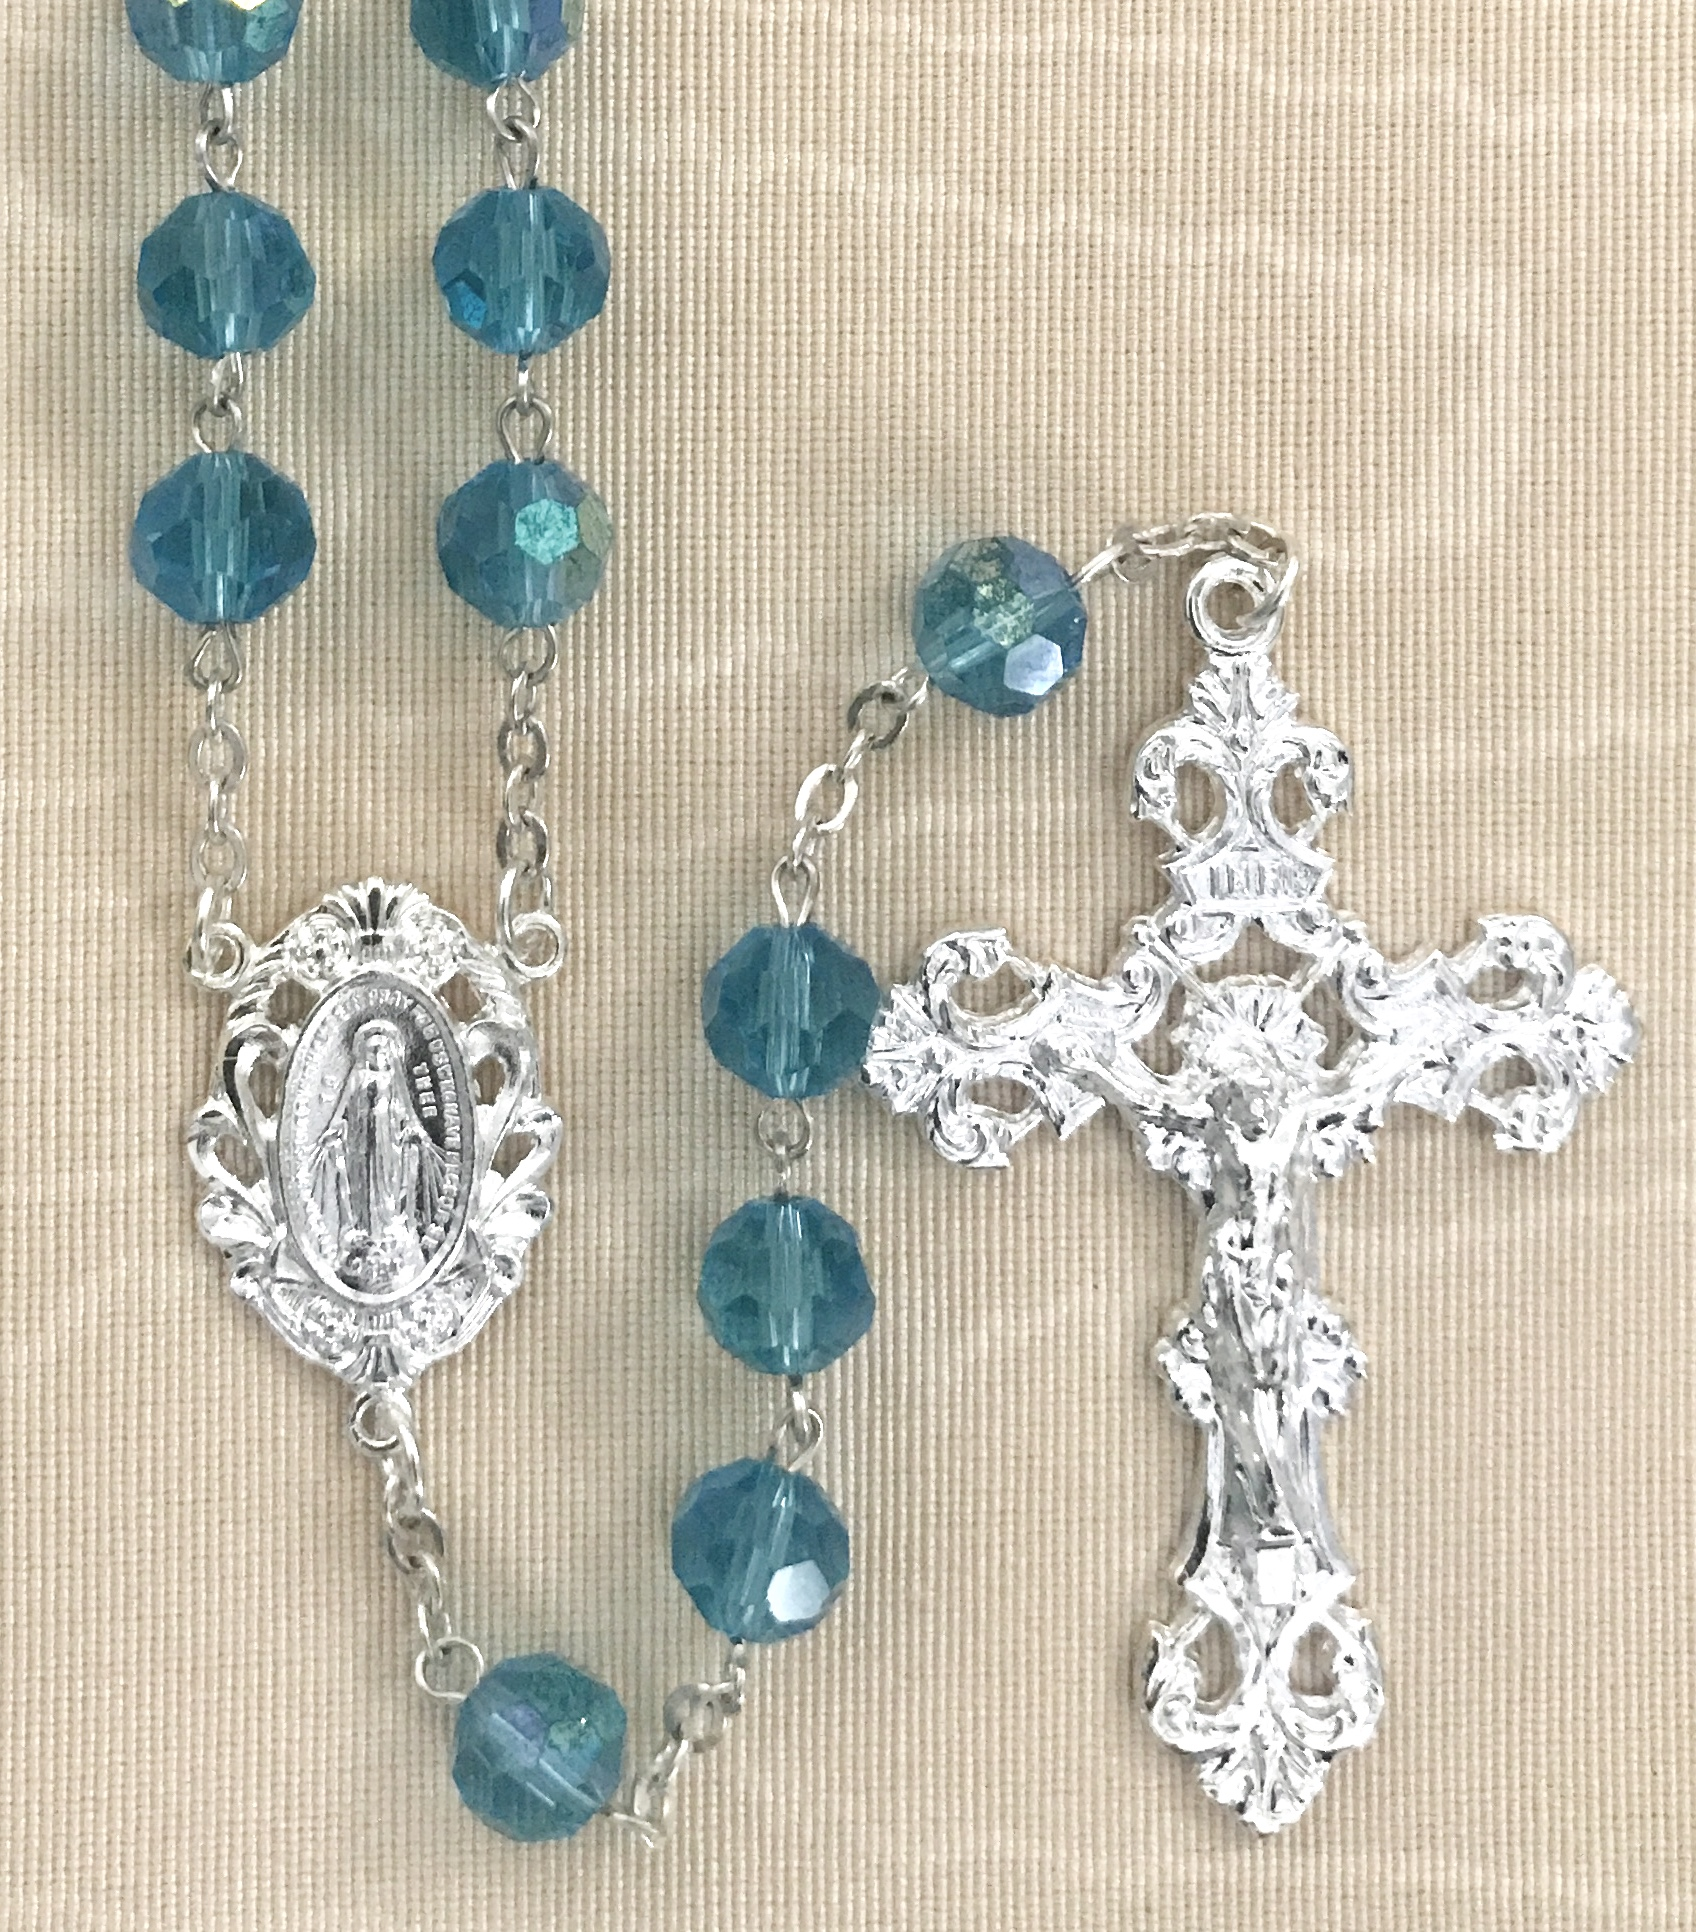 8mm AQUA TIN CUT ROSARY WITH STERLING SILVER PLATED CRUCIFIX AND CENTER GIFT BOXED